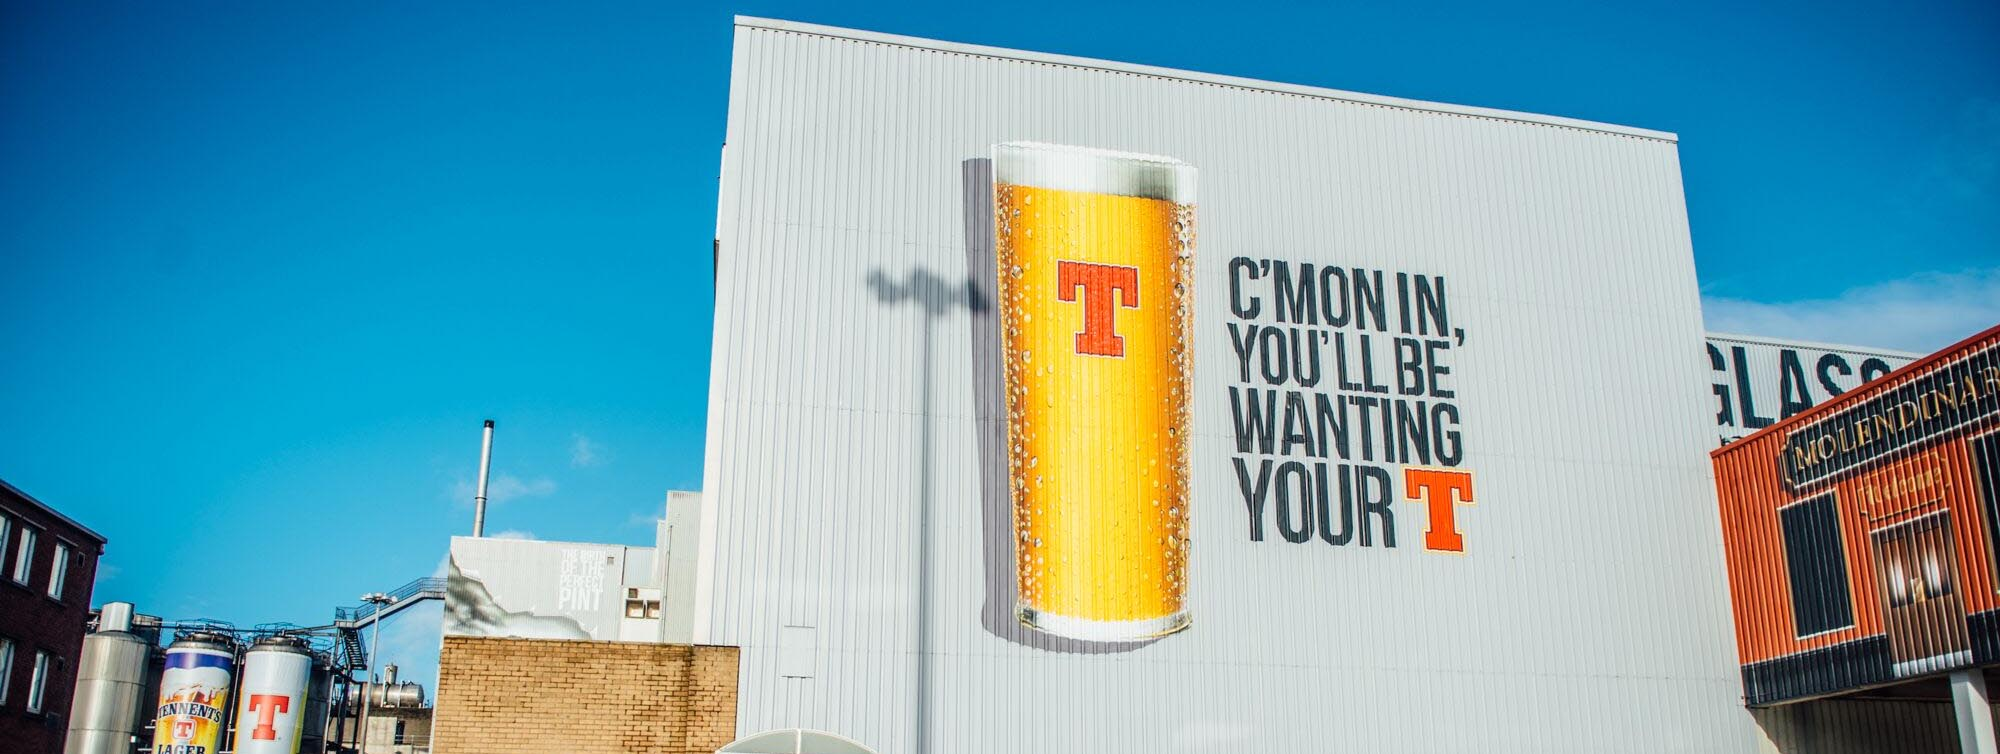 tennents tour